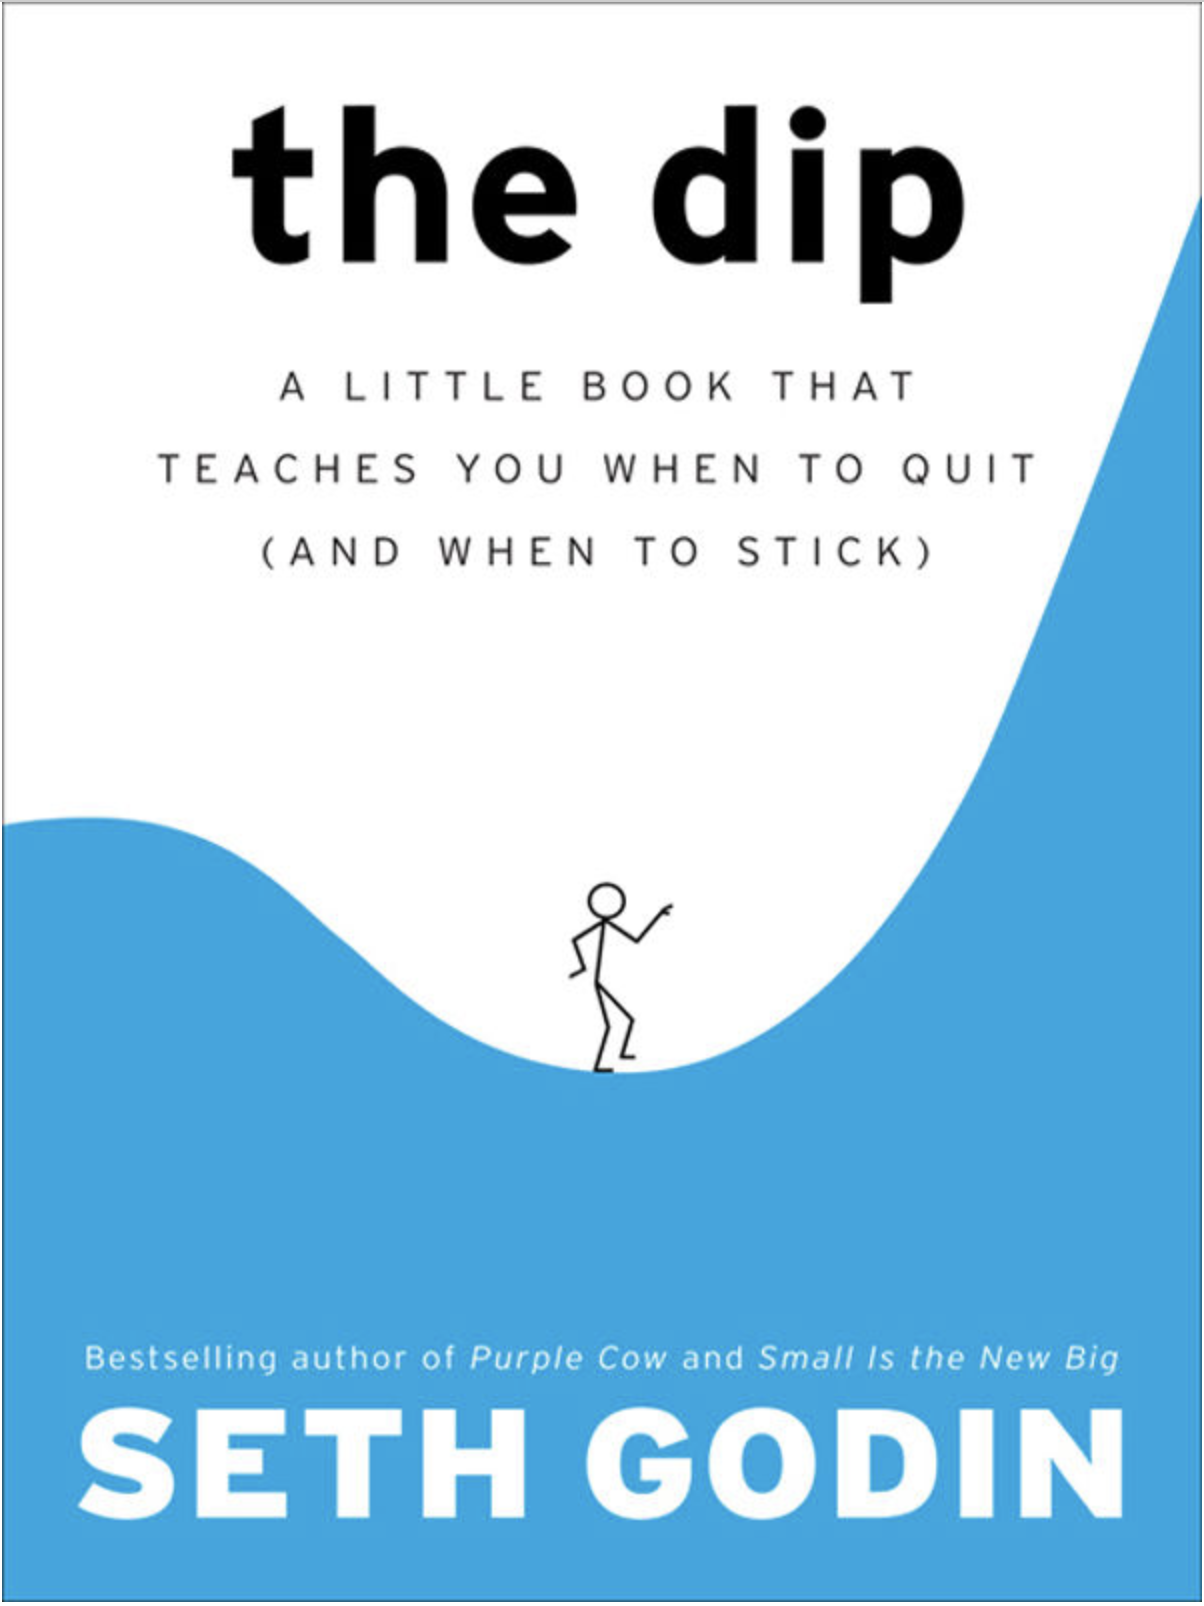 Seth Godin The Dip SocratesPost admissions insiders insights